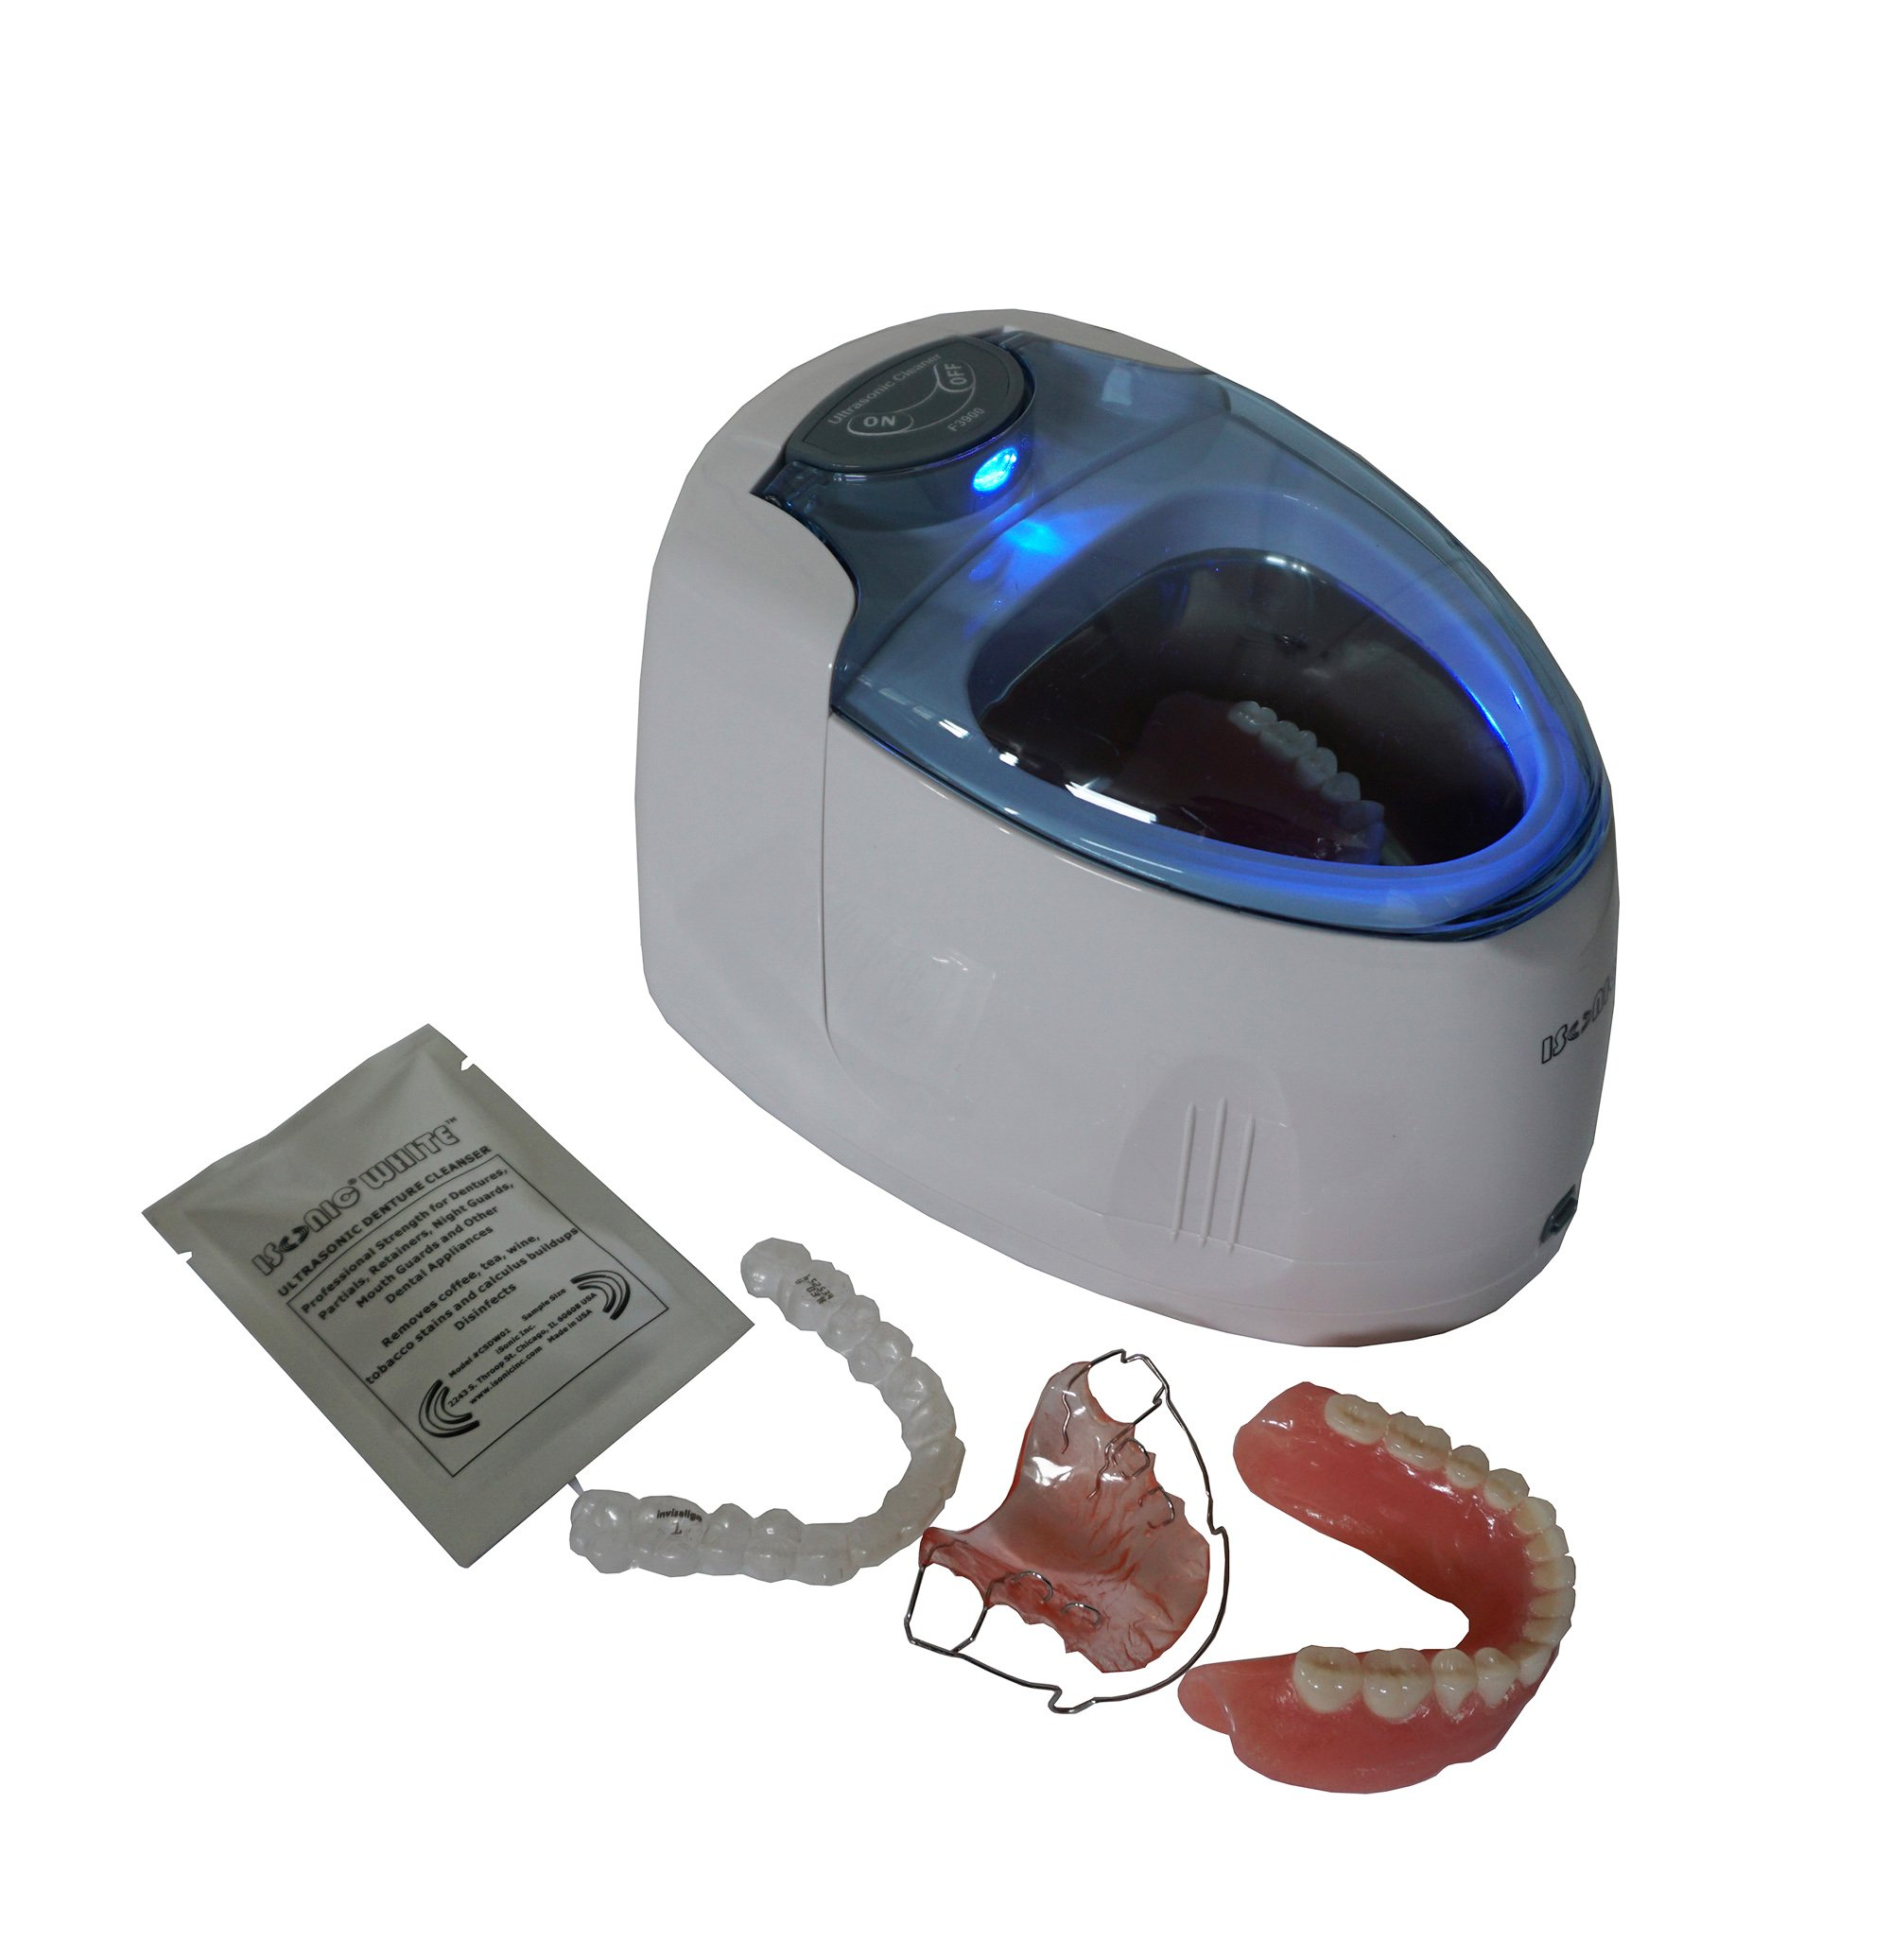 iSonic F3900 Ultrasonic Cleaner for Dentures, Aligners/Retainers, Dental and Dleep Apnea Appliances, and Mouth Guards, 110V (tank no longer removable) by iSonic (Image #2)